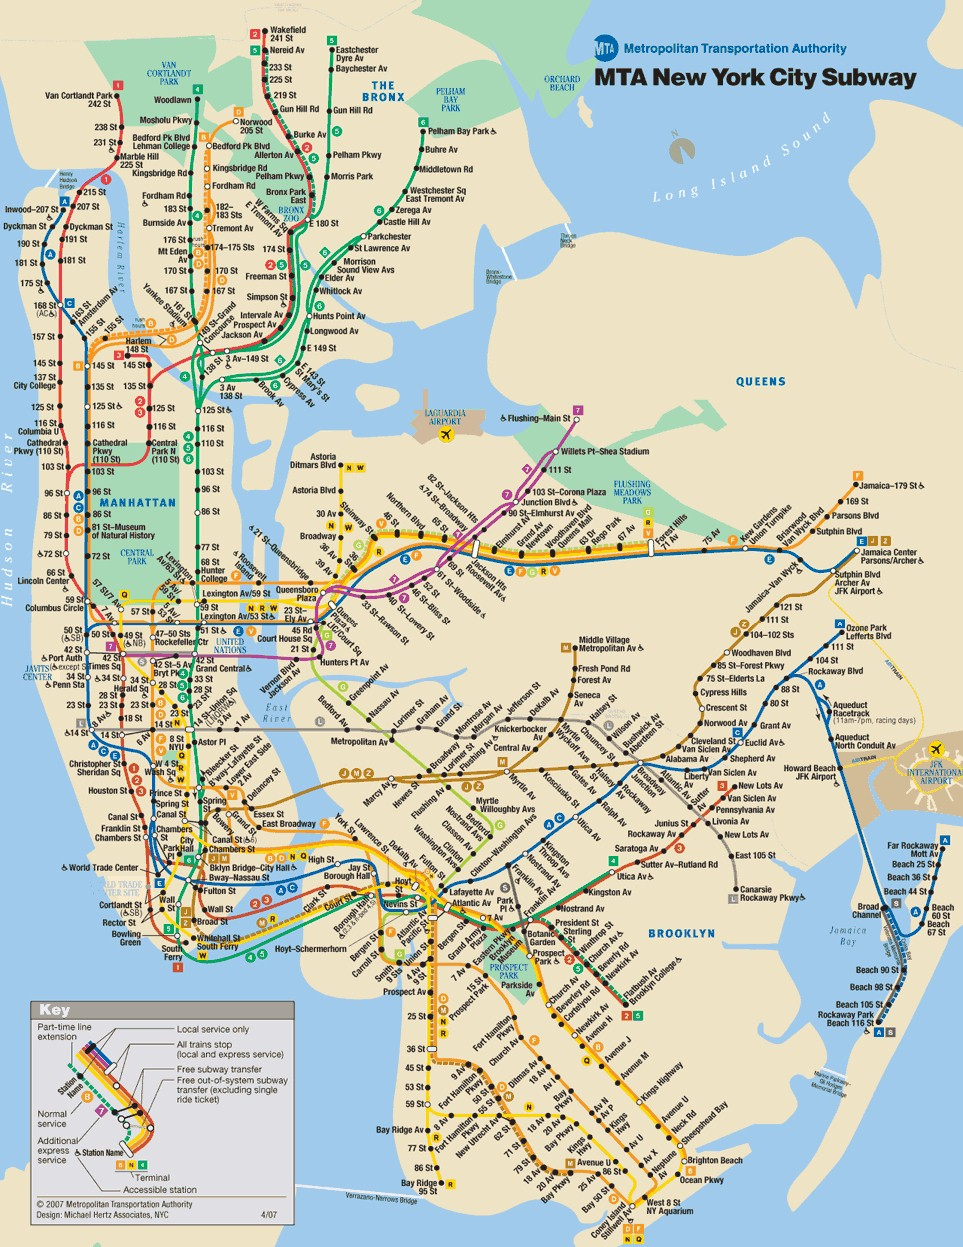 1979 Subway Map Mta.World S Most Intricate Subway Networks Geoengineer Org